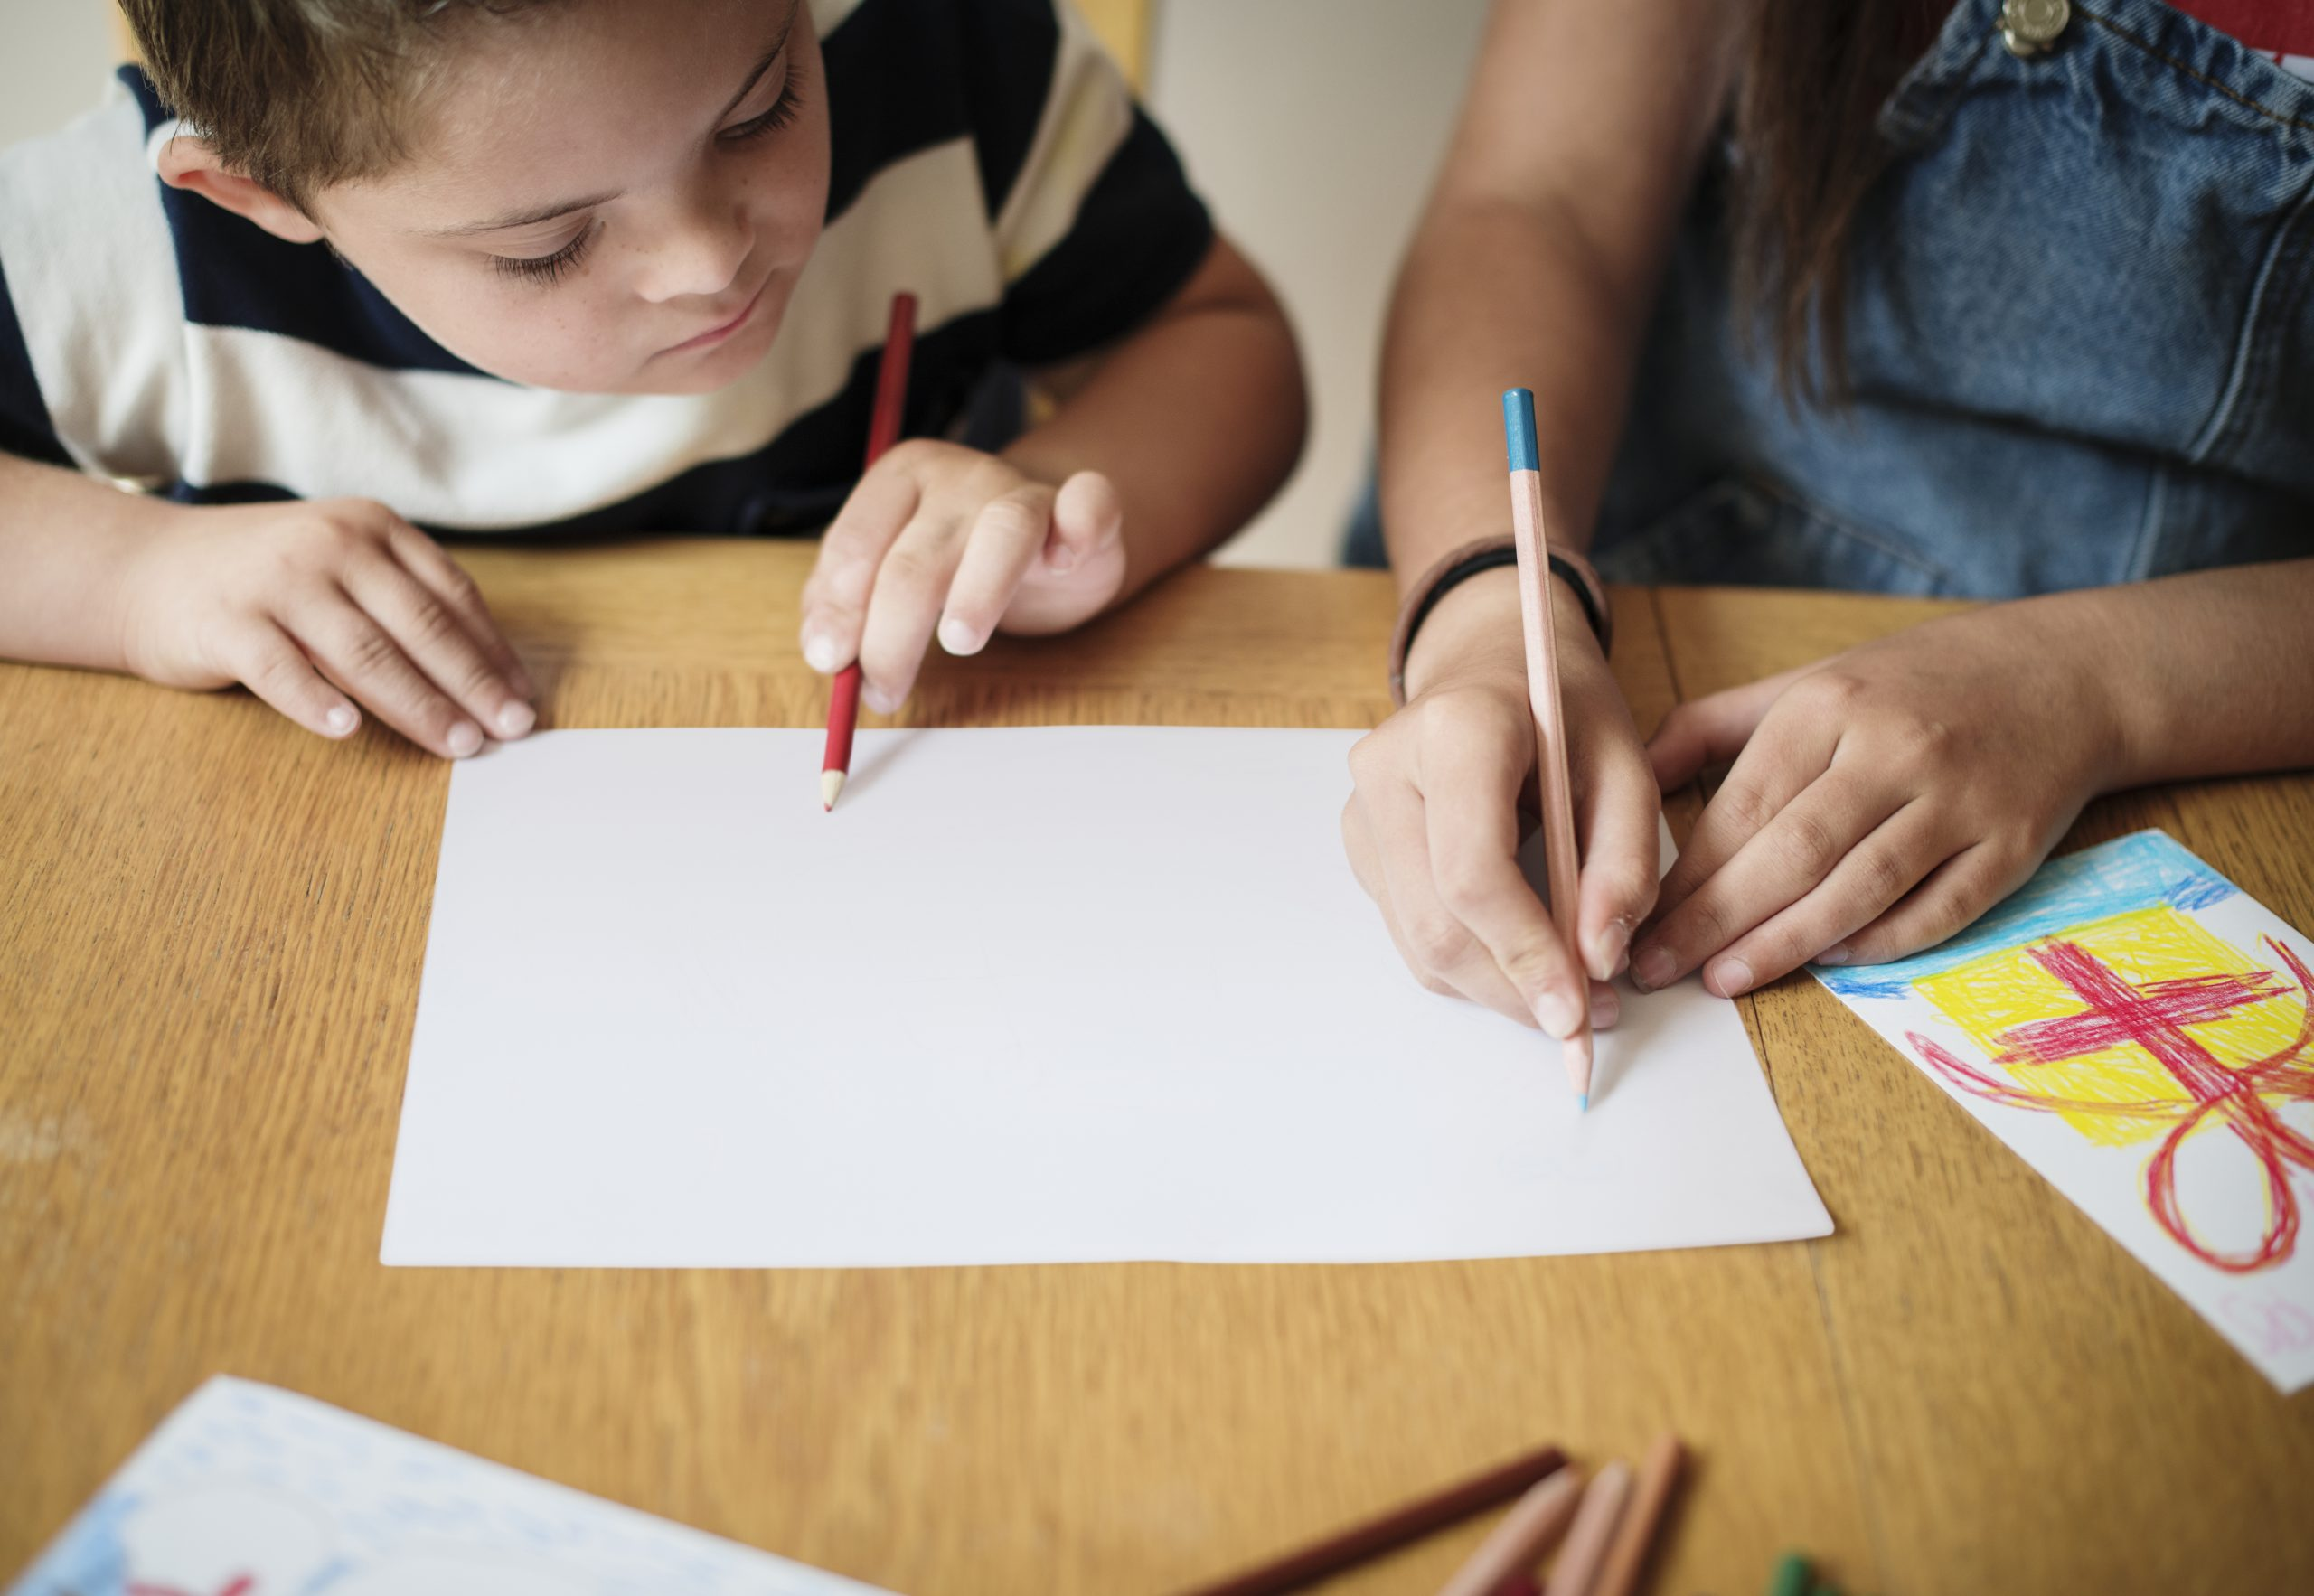 two kids drawing at a table